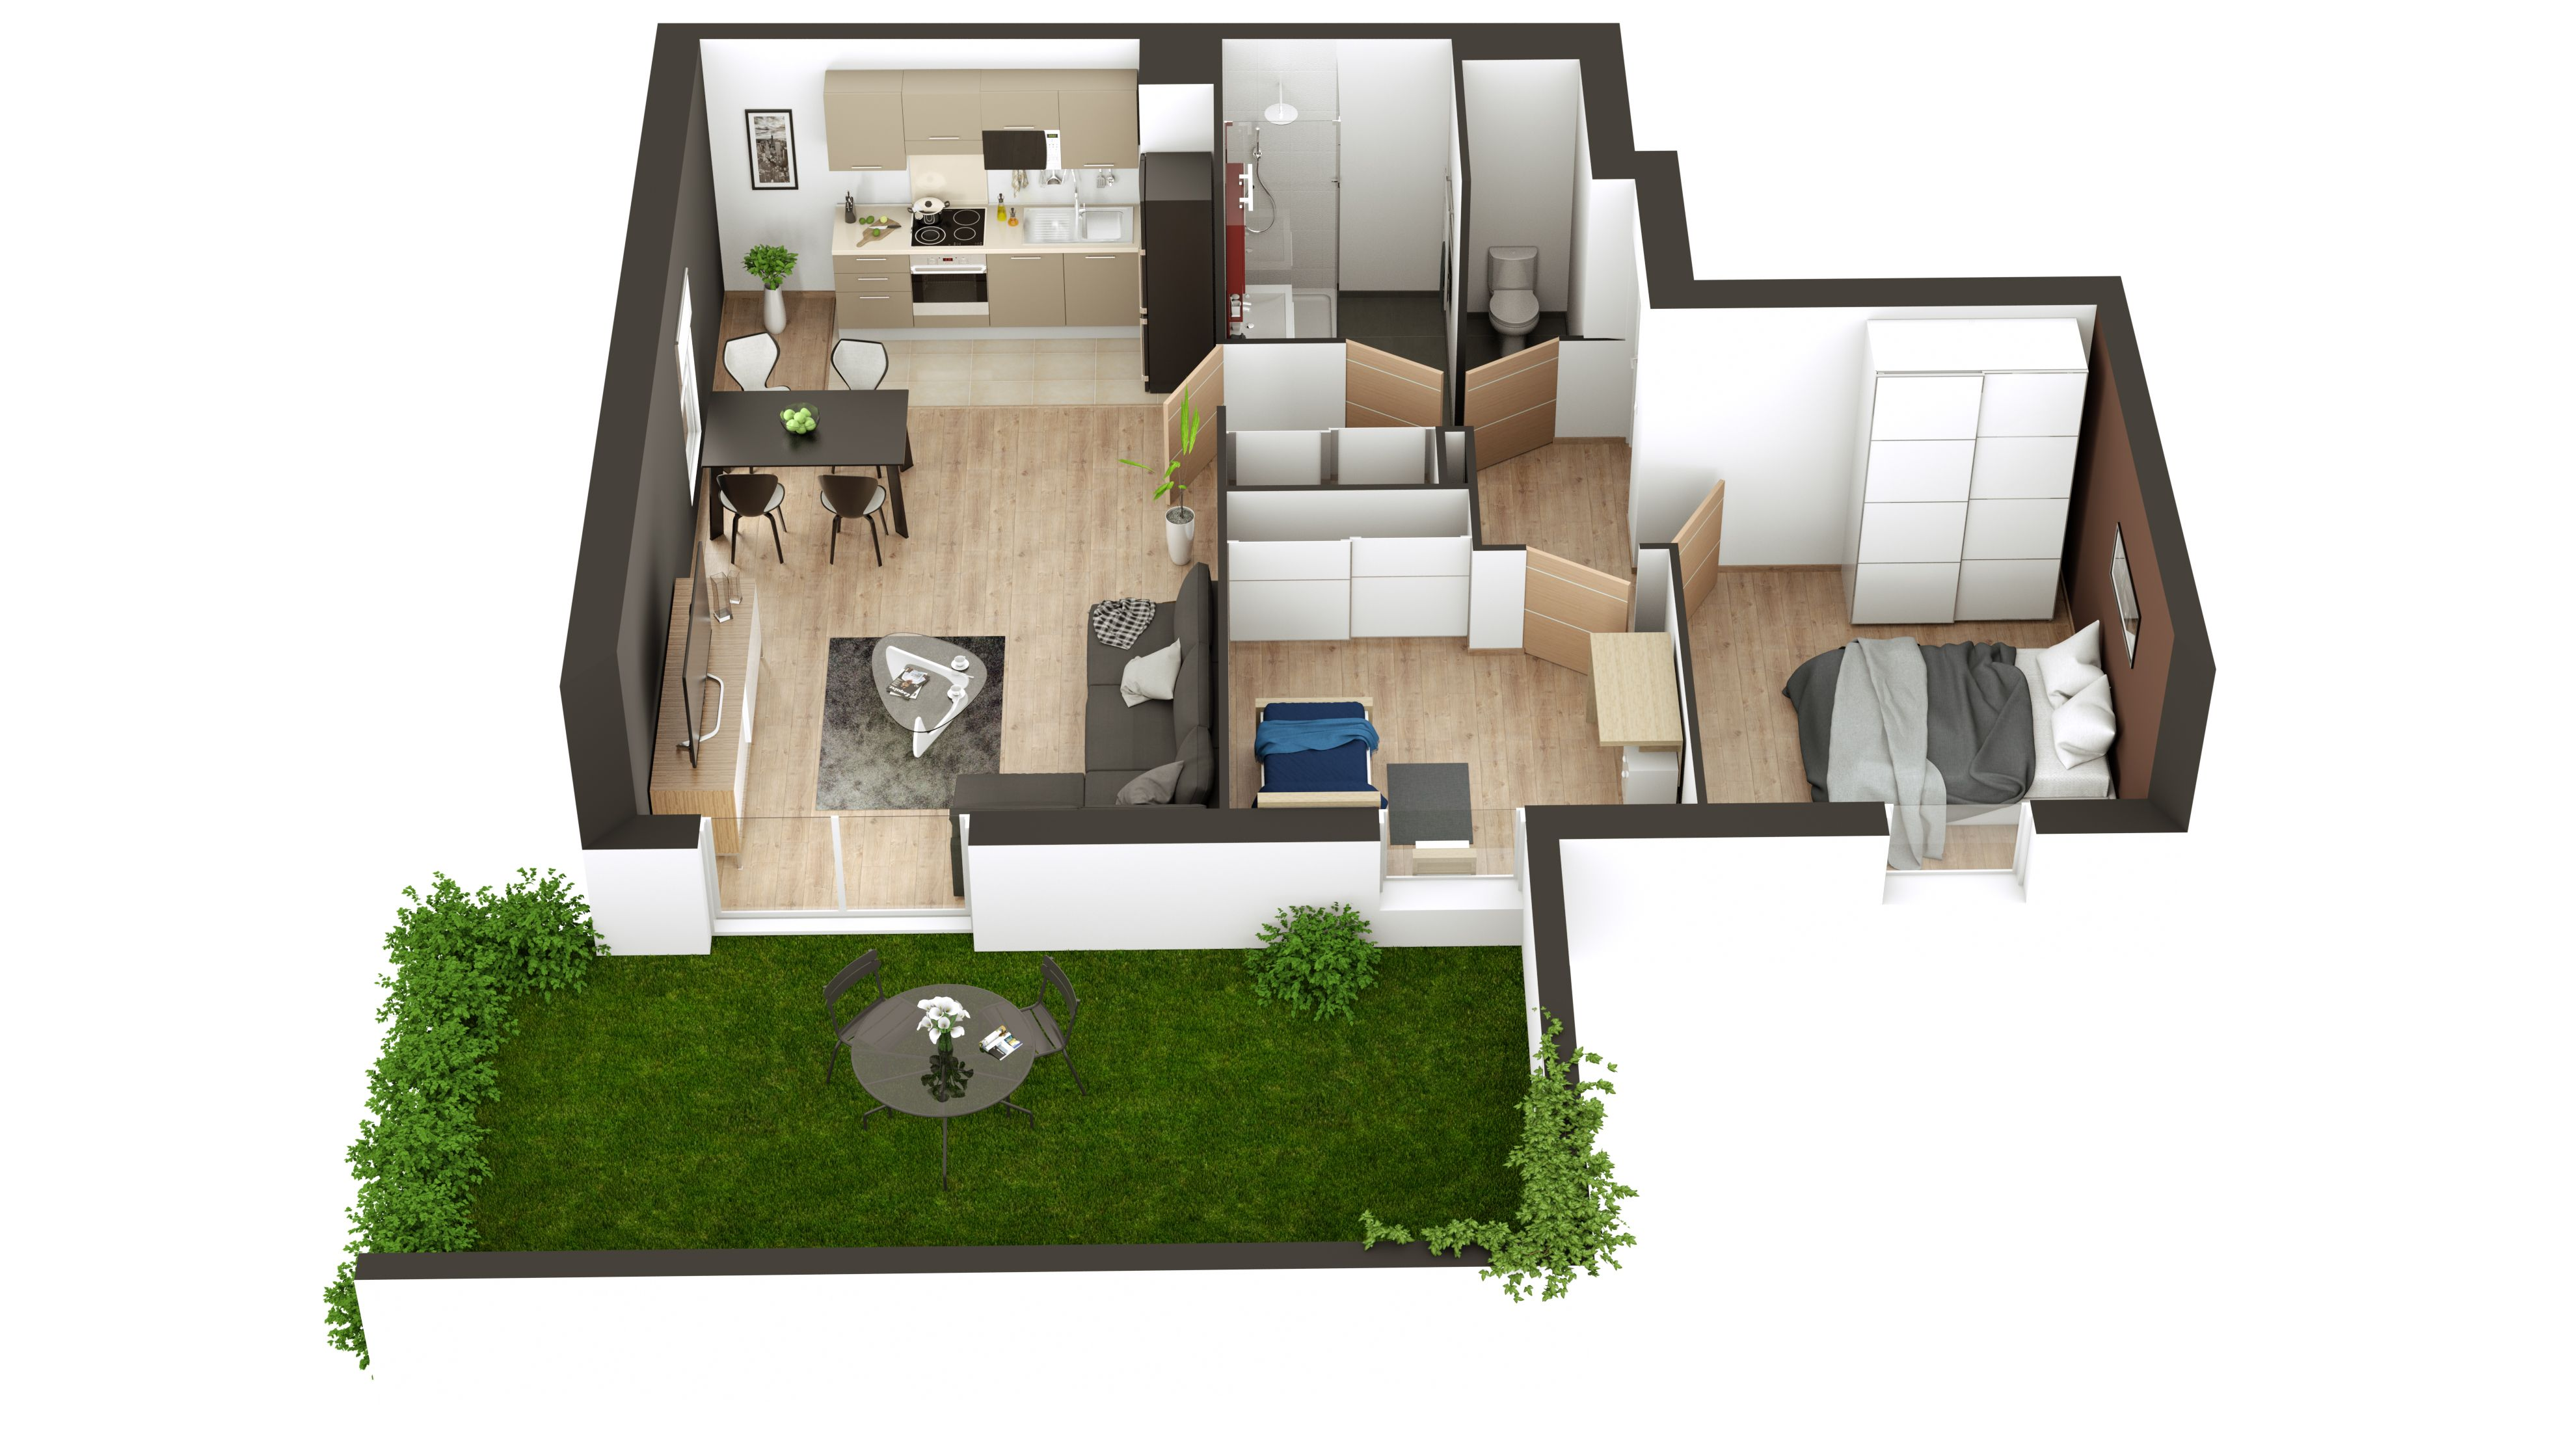 3D Floor Plan Realize Dwith My Sketcher. Create Your Own